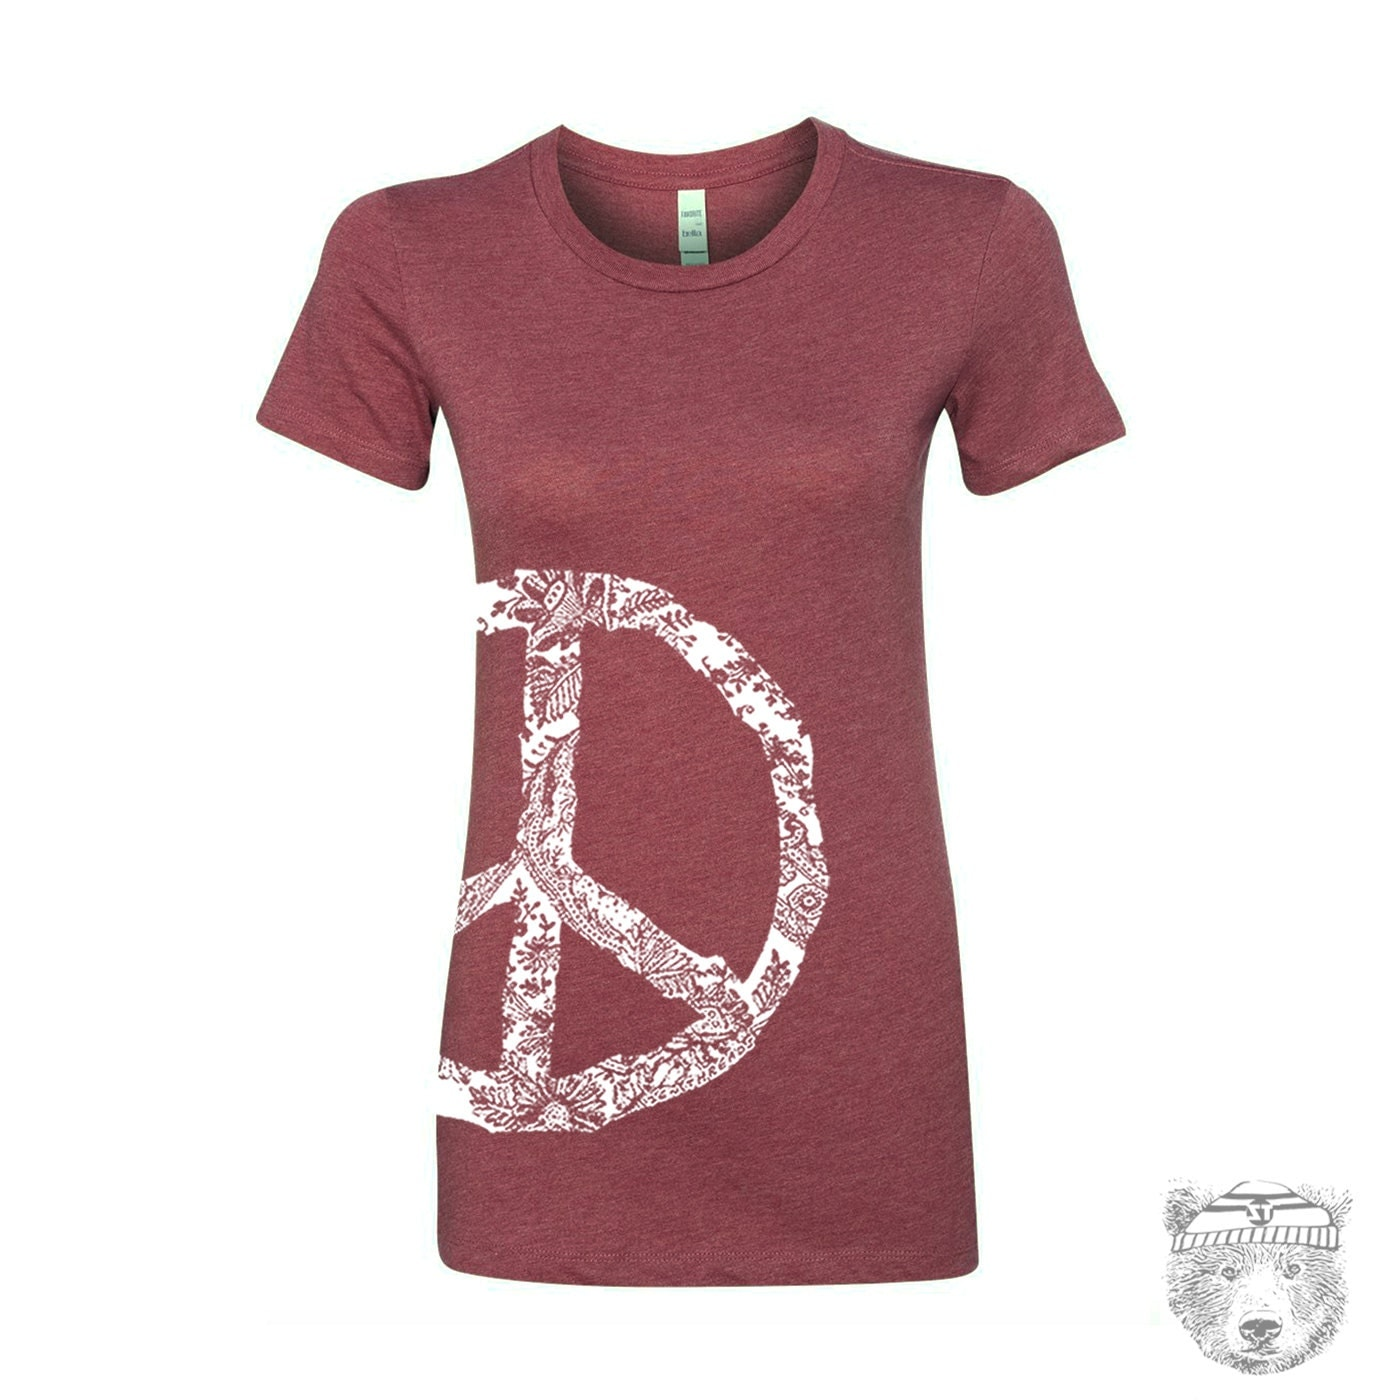 Womens vintage peace t shirt hand screen printed s m l xl xxl for Vintage screen print t shirts